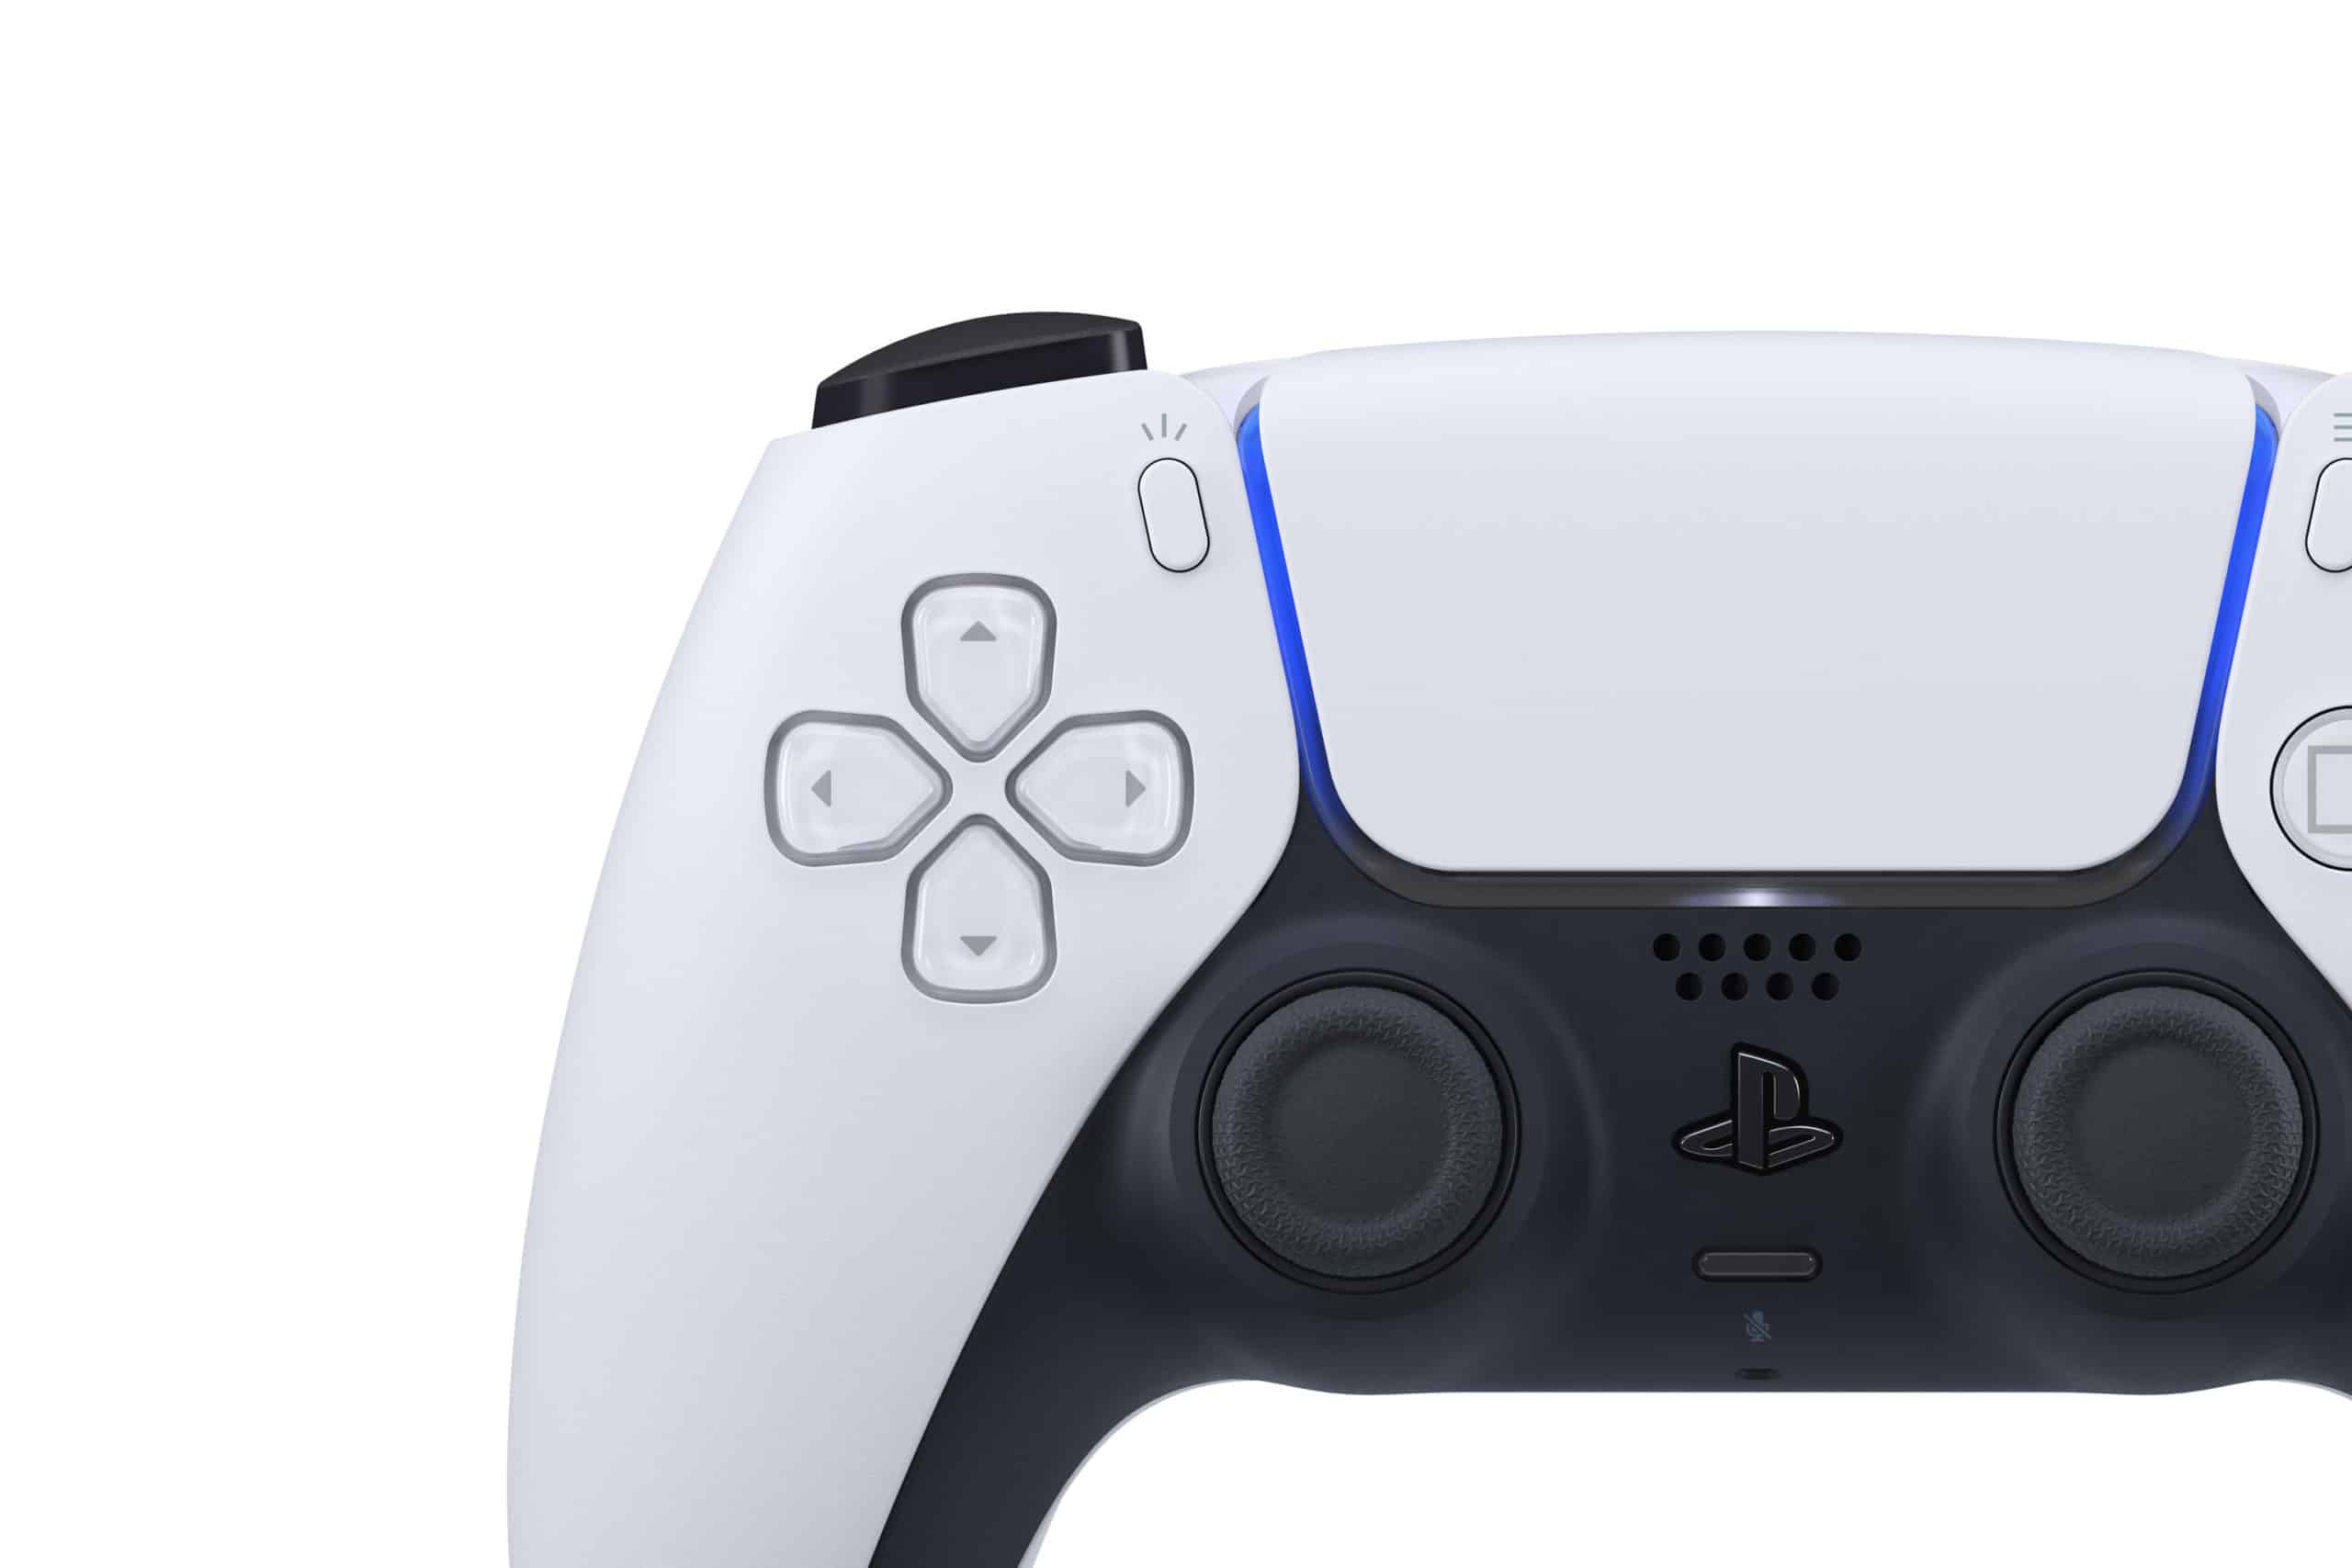 PS5 PlayStation 5 Release Date DualSense Controller Next-Gen EA Games